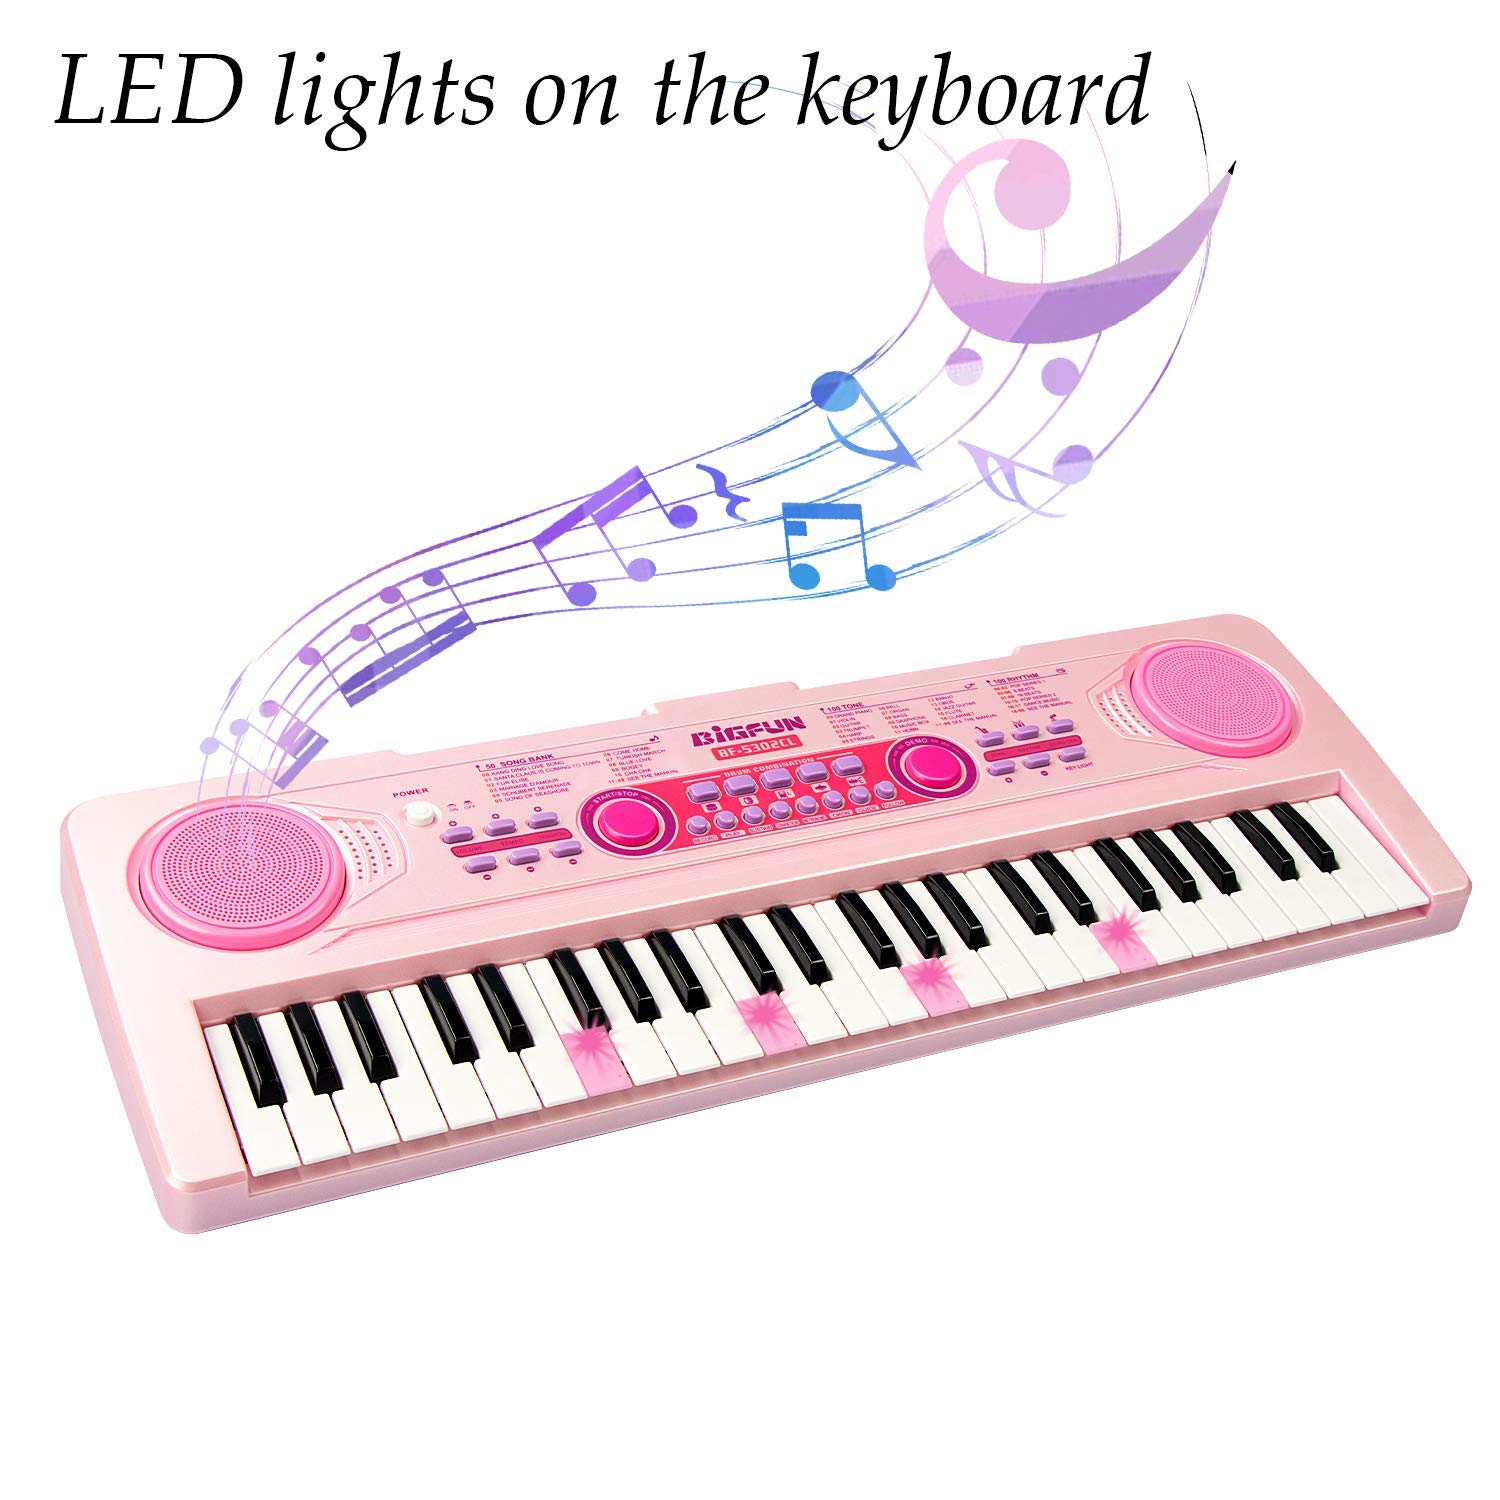 SAOCOOL Piano Keyboard, 49 Keys Multi-Function Charging Electronic Kids Piano Keyboard Music Educational Toy for Children Over 3 Years Old (Pink) by SAOCOOL (Image #5)